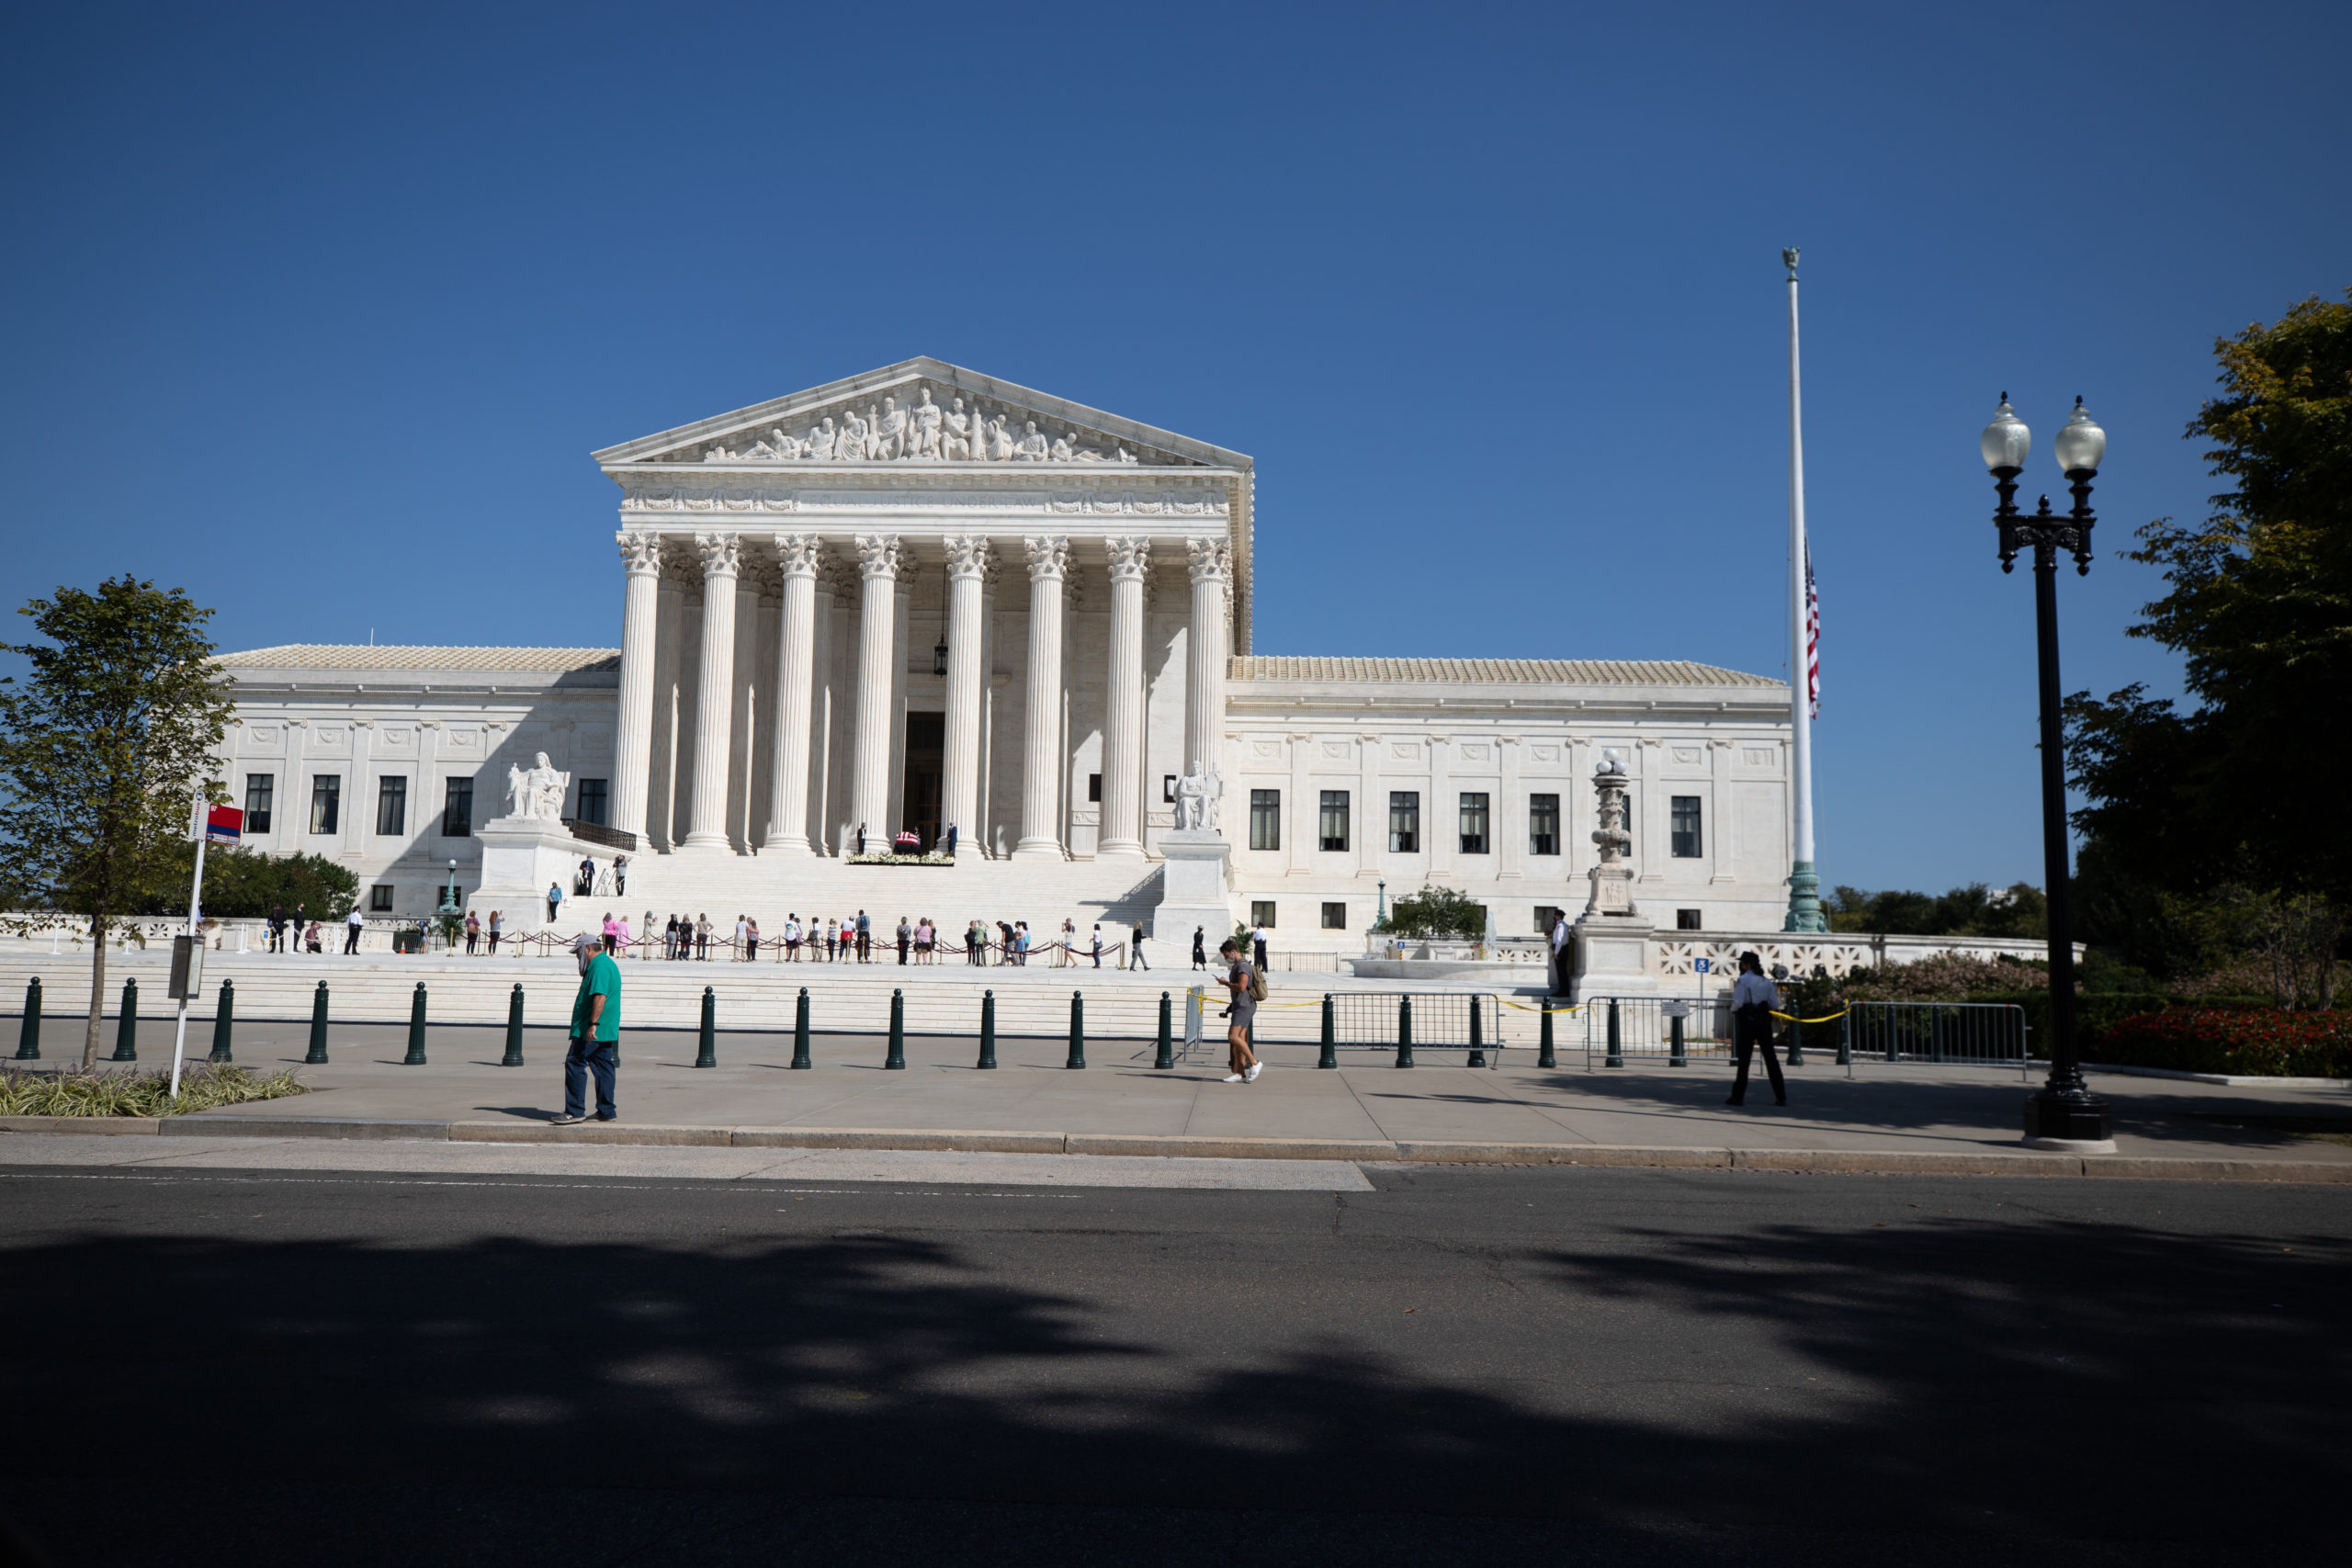 Ruth Bader Ginsburg's flag-draped casket lies in repose on the steps of the Supreme Court for the public to pay respects on Sept. 23, 2020. (Photo: Kaylee Greenlee / DCNF)